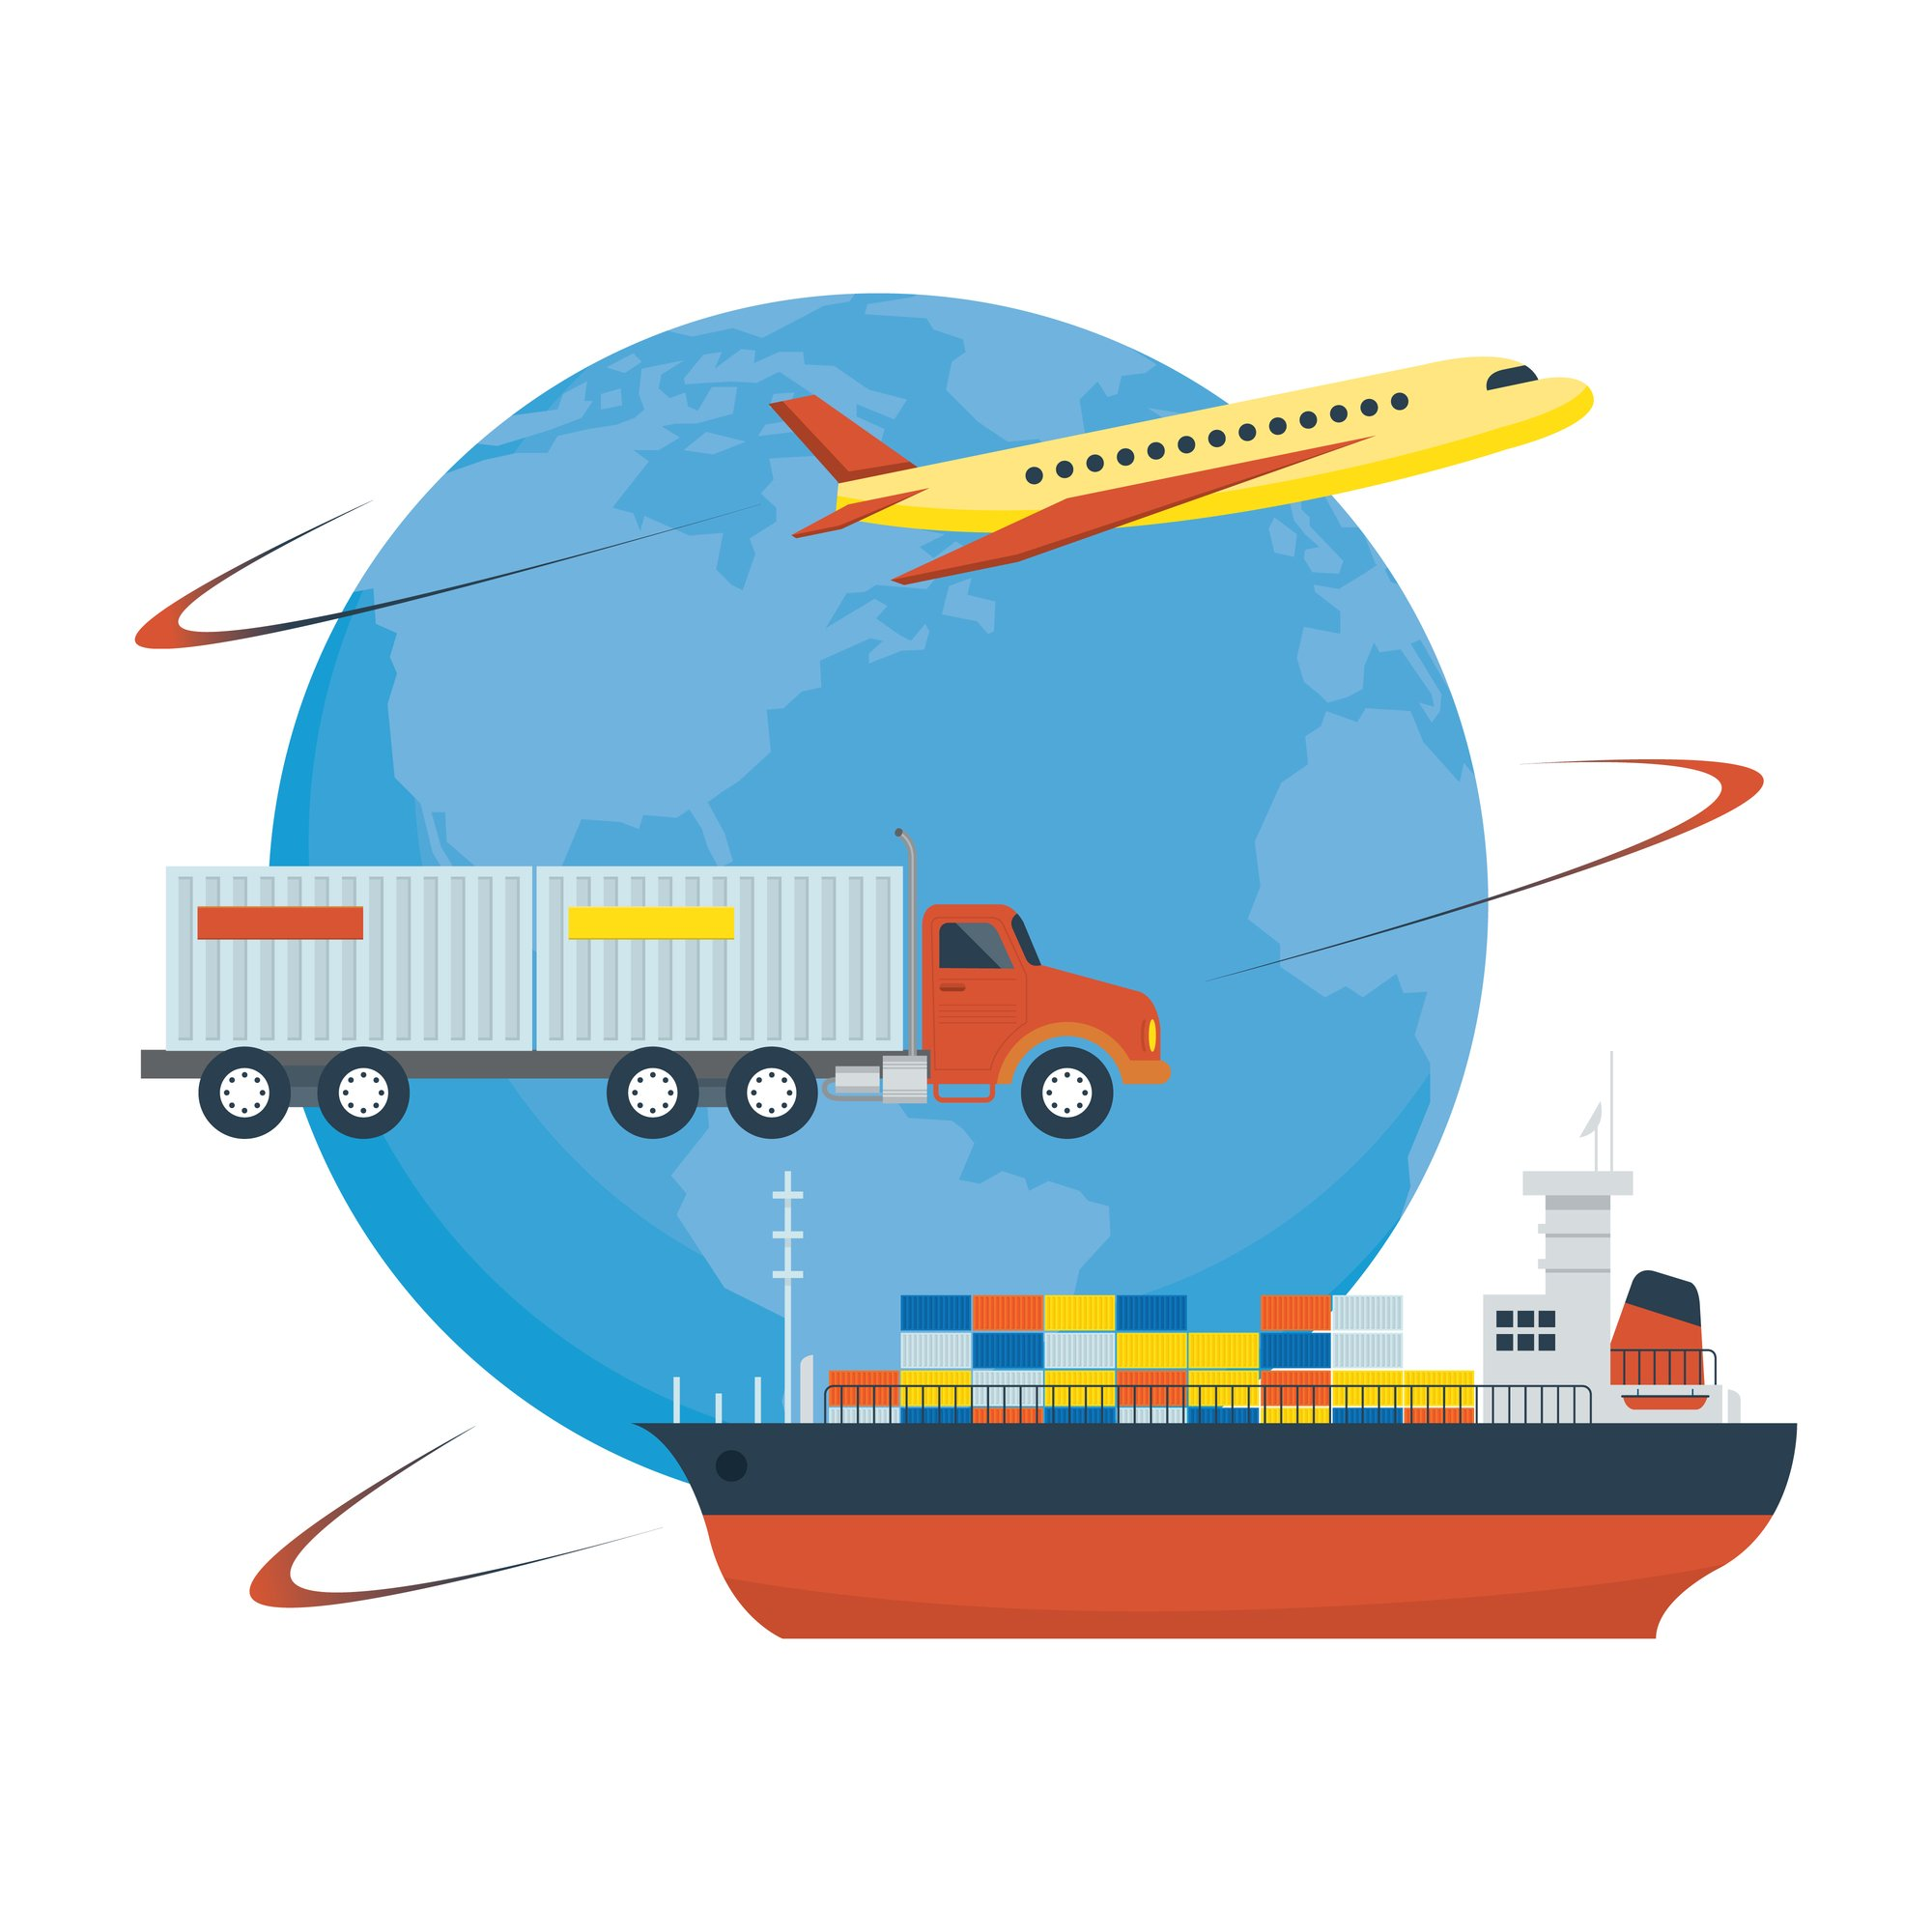 Intermodal Is The Use of Multiple Transportation Modes To Move Freight